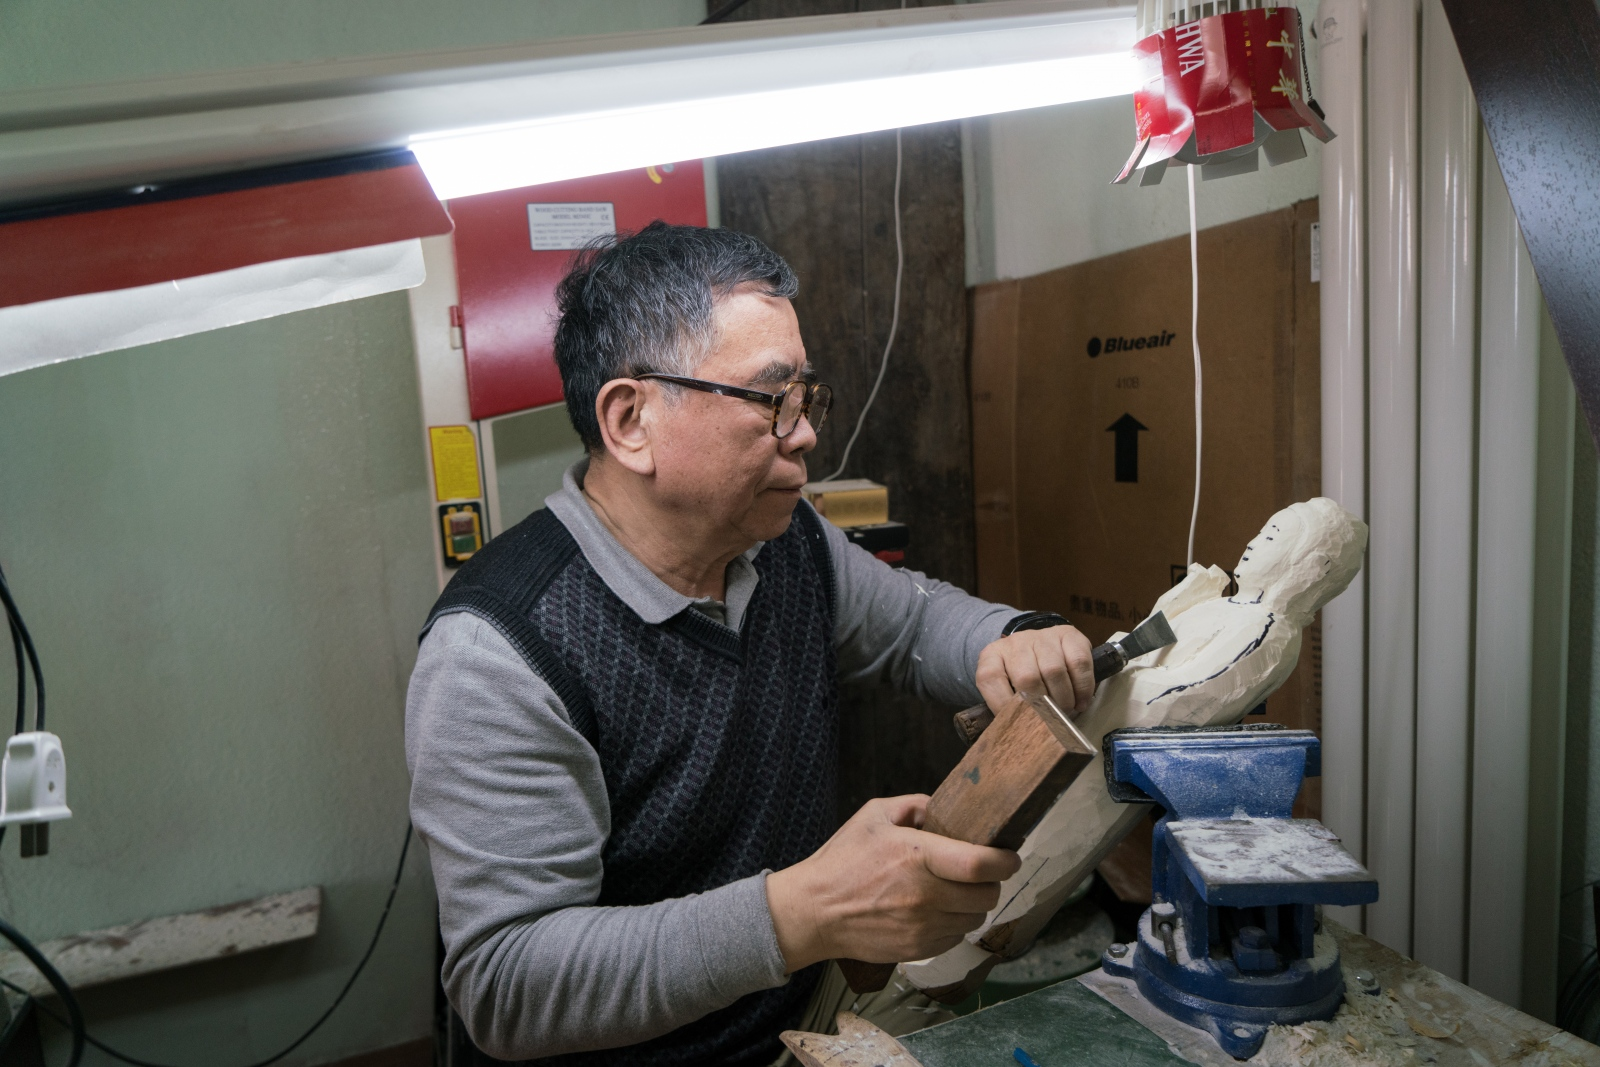 Ivory carving artist Li Chunke works on an ivory Gautama Buddha statue in his ivory workshop in Beijing, China on December 10, 2017. Li has worked as an ivory carving artist since 1964 when he was 15 years old.